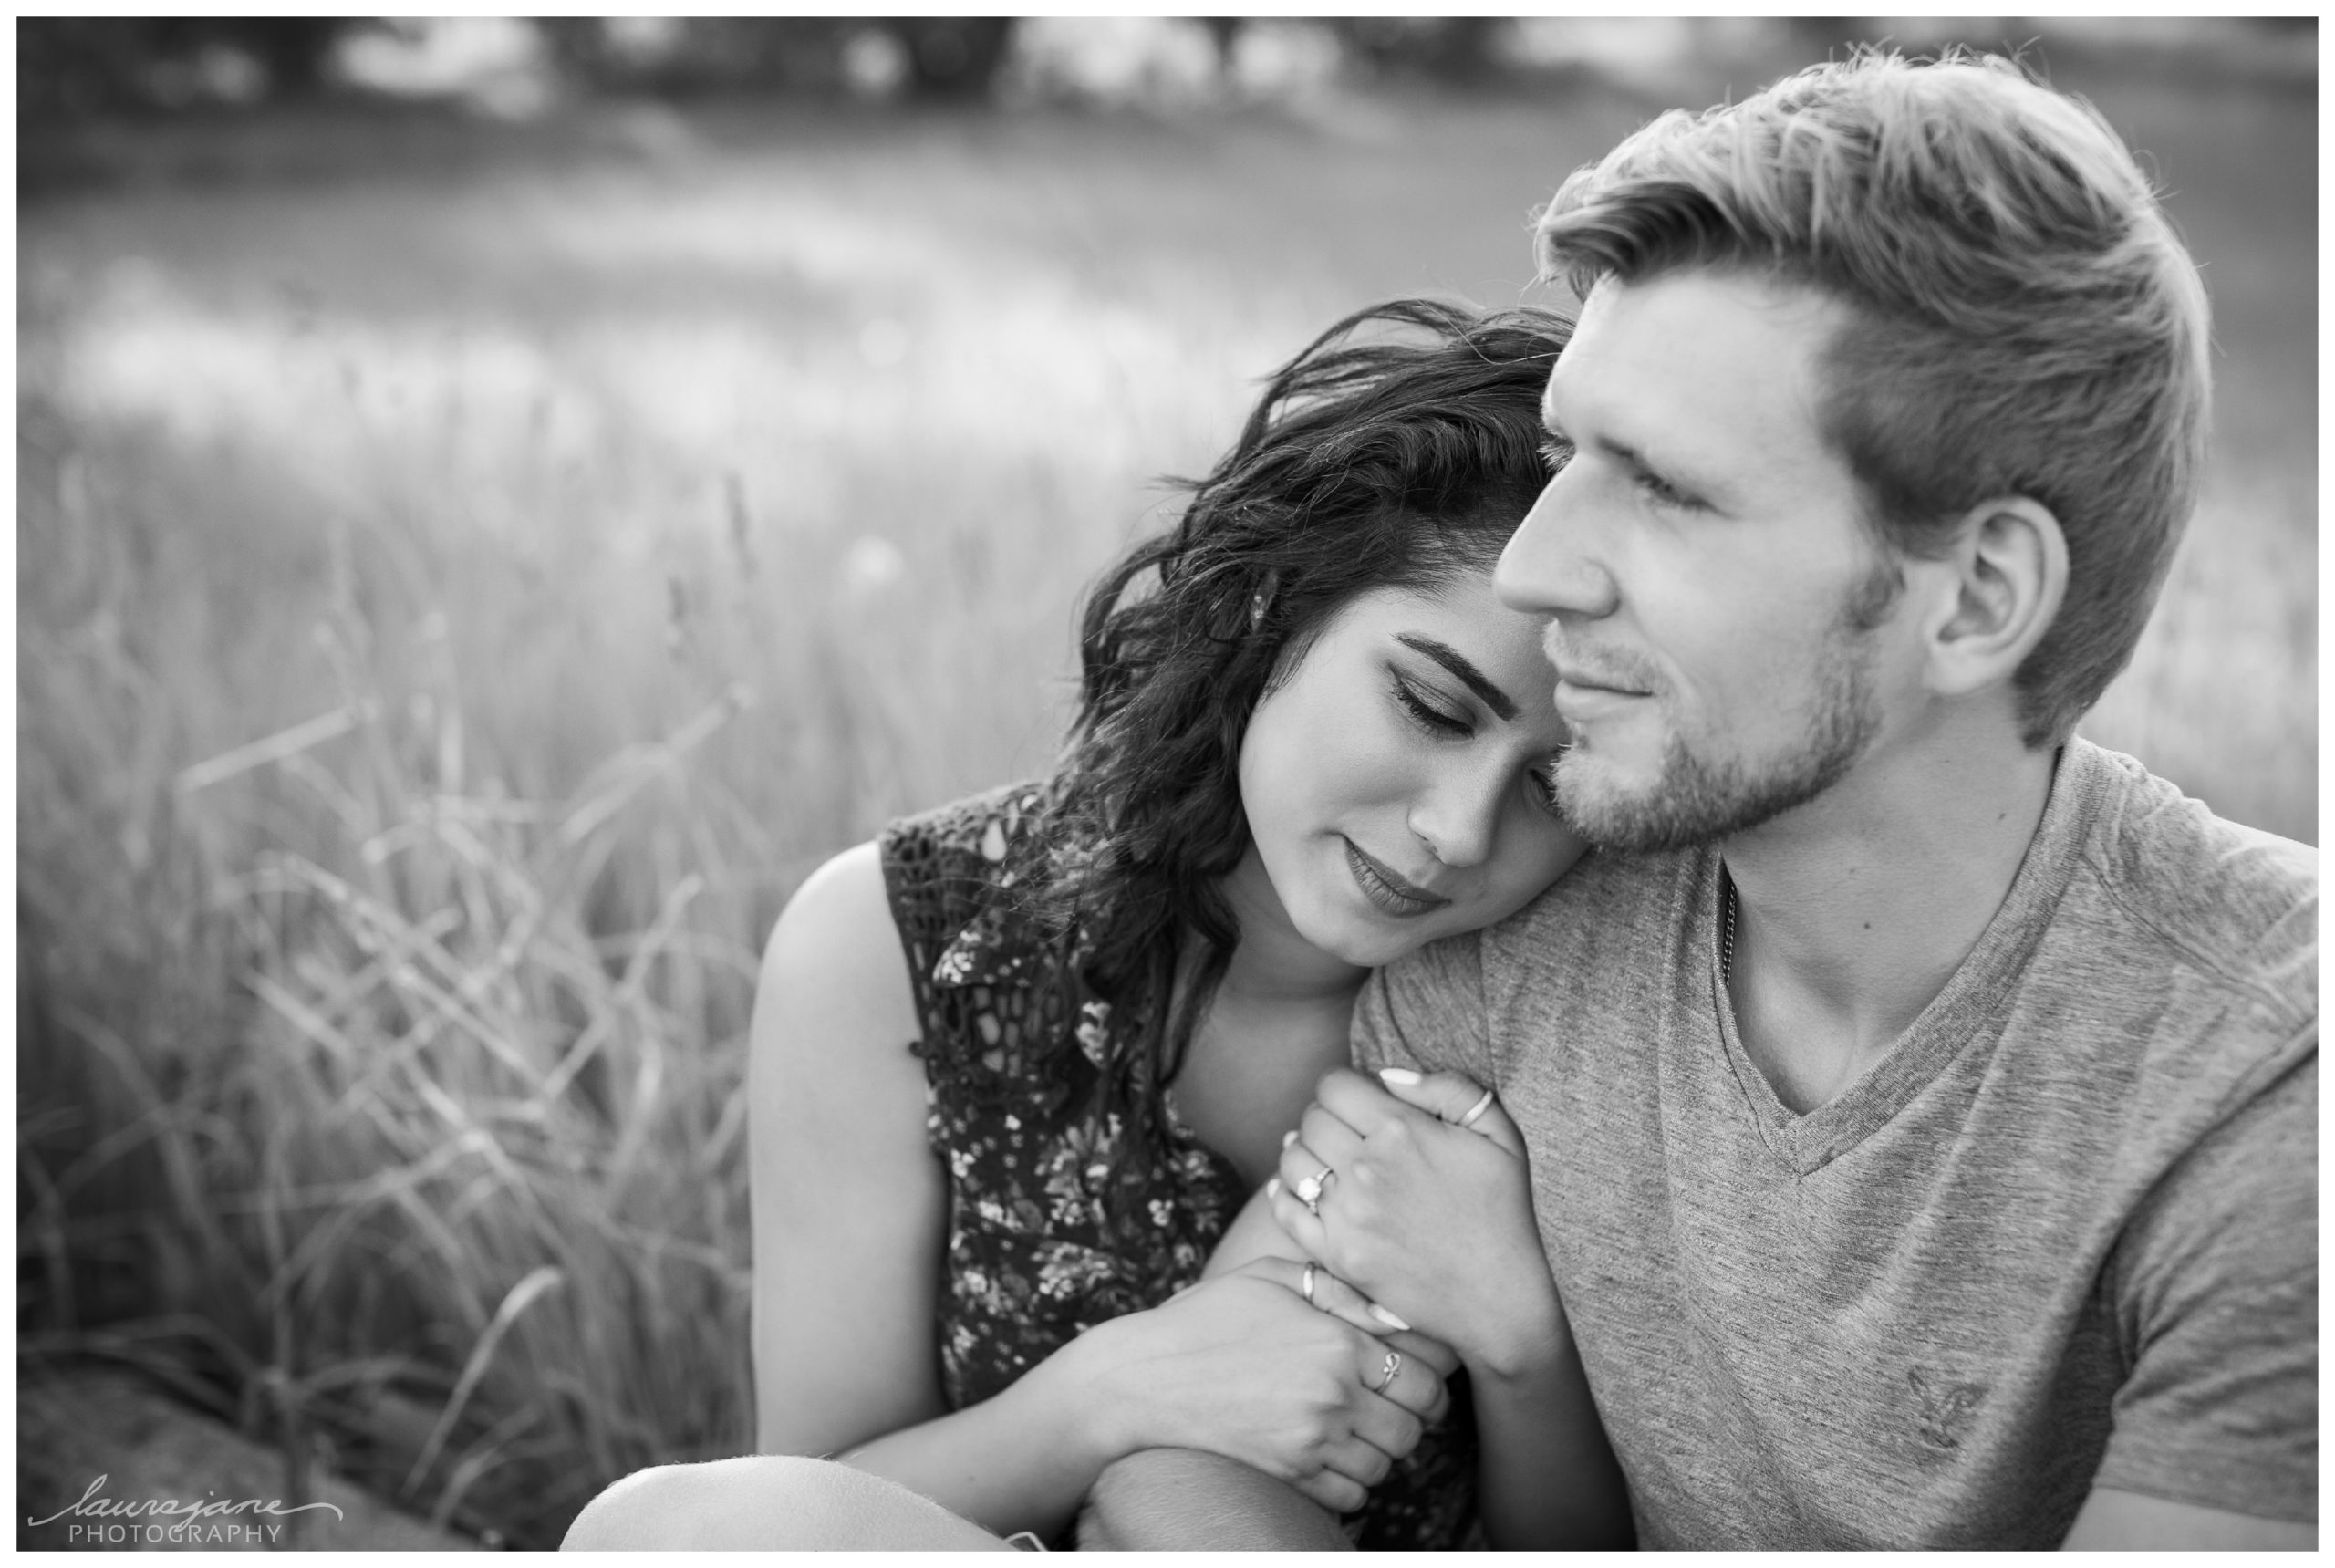 Soft and romantic engagement photos